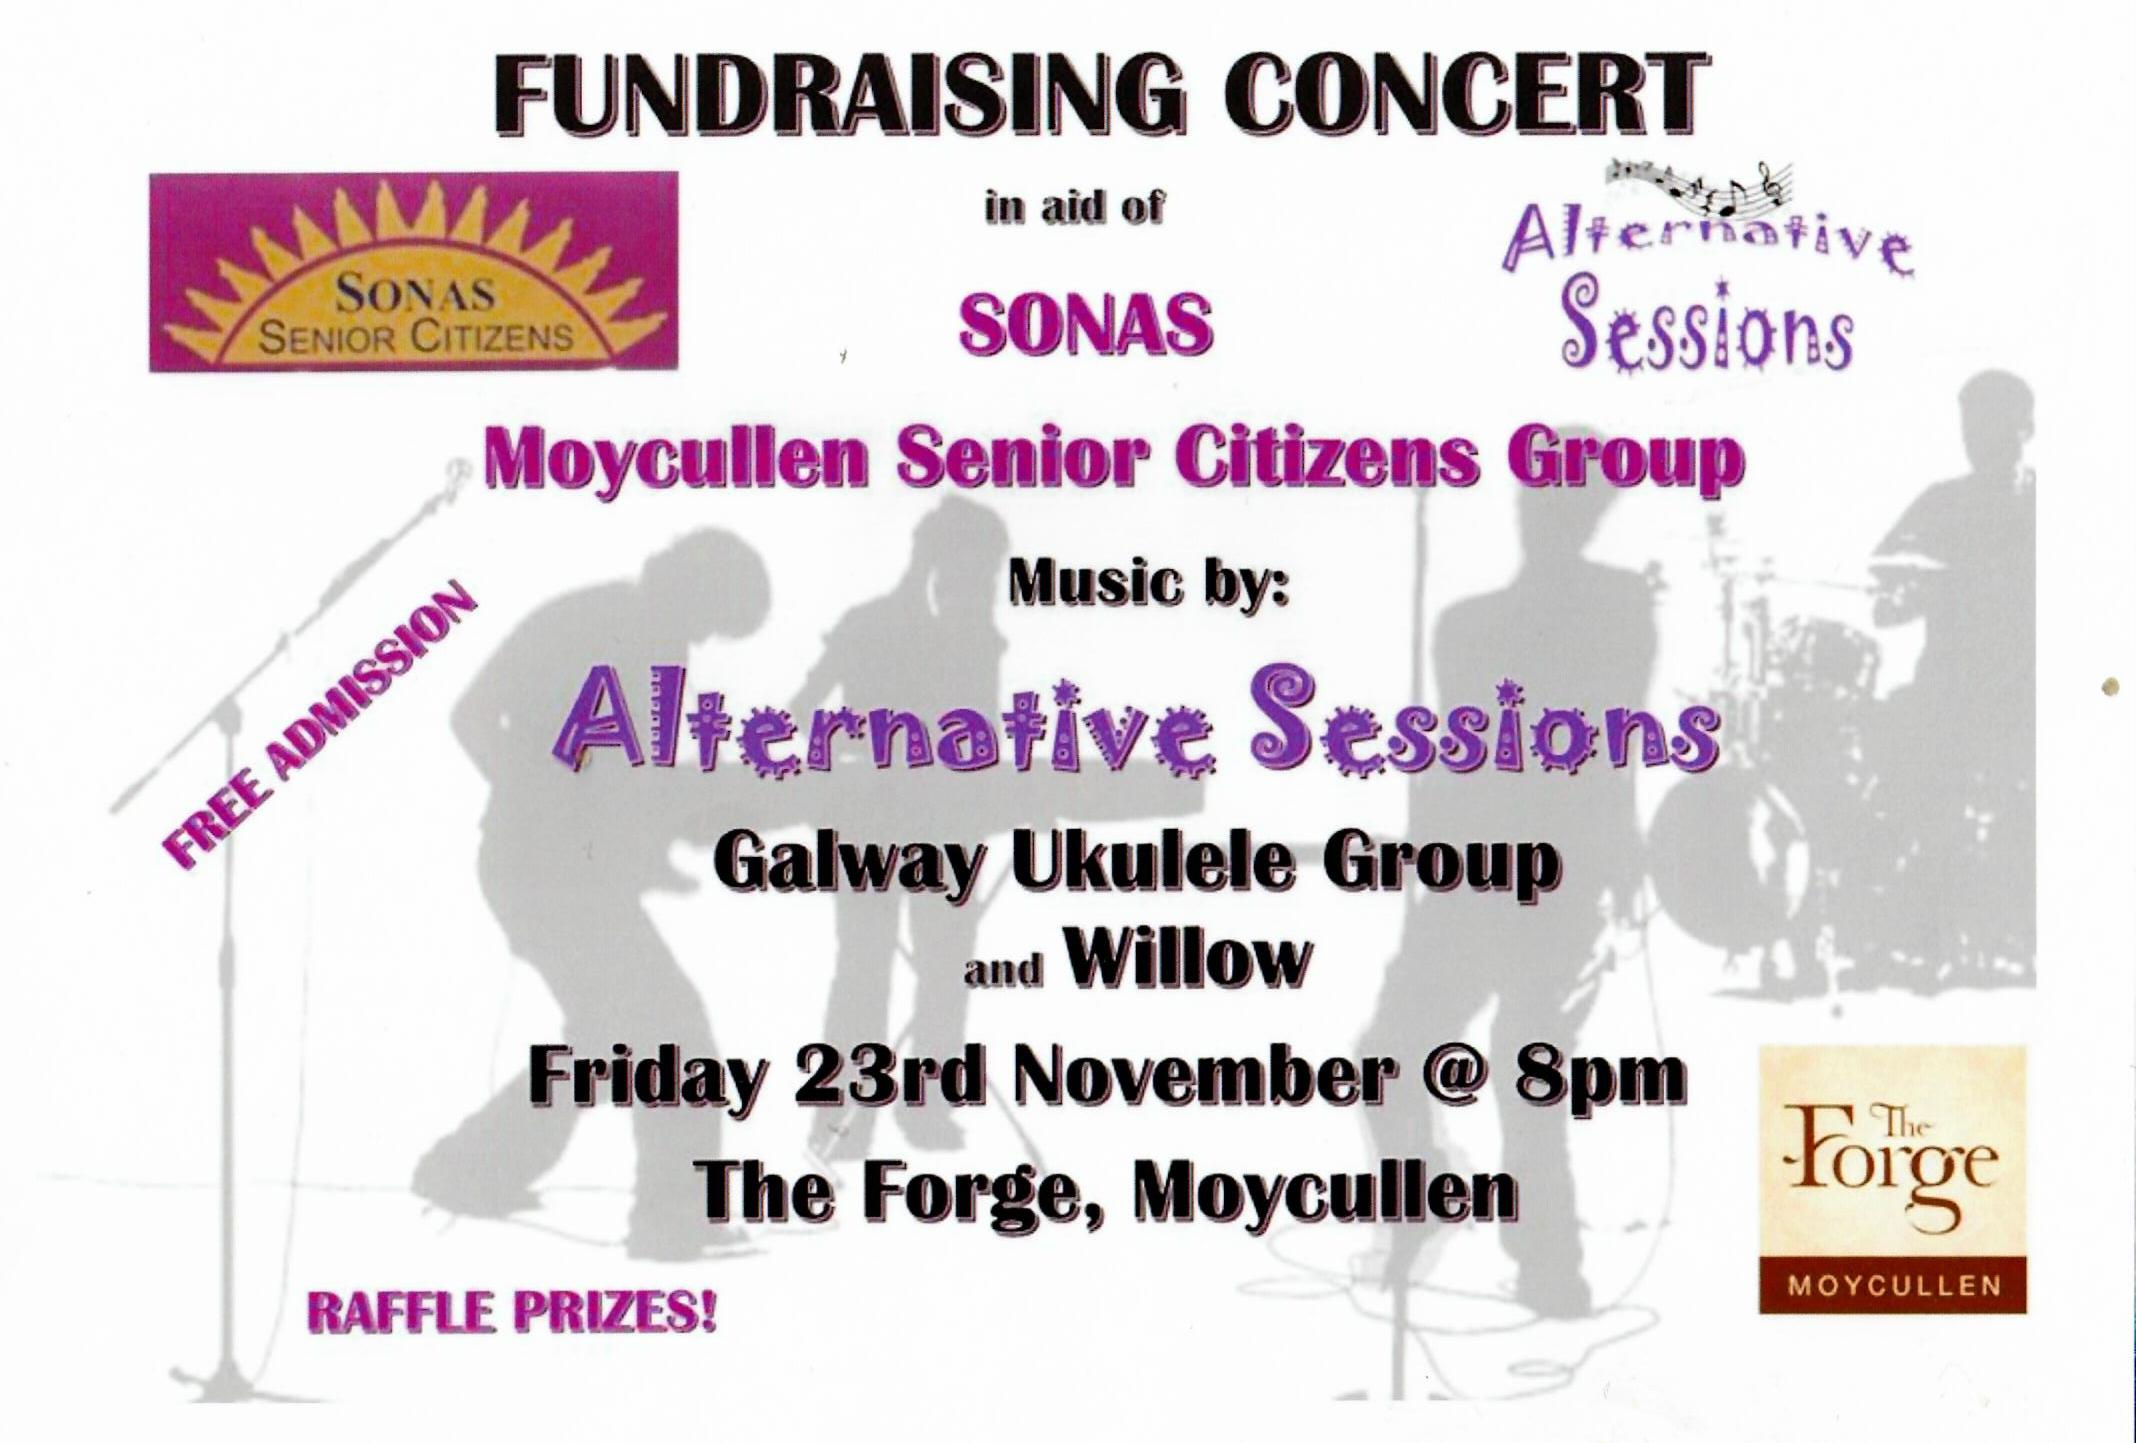 Sonas fund raising concert. Friday 23rd Nov at the Forge, Moycullen. Free Admision